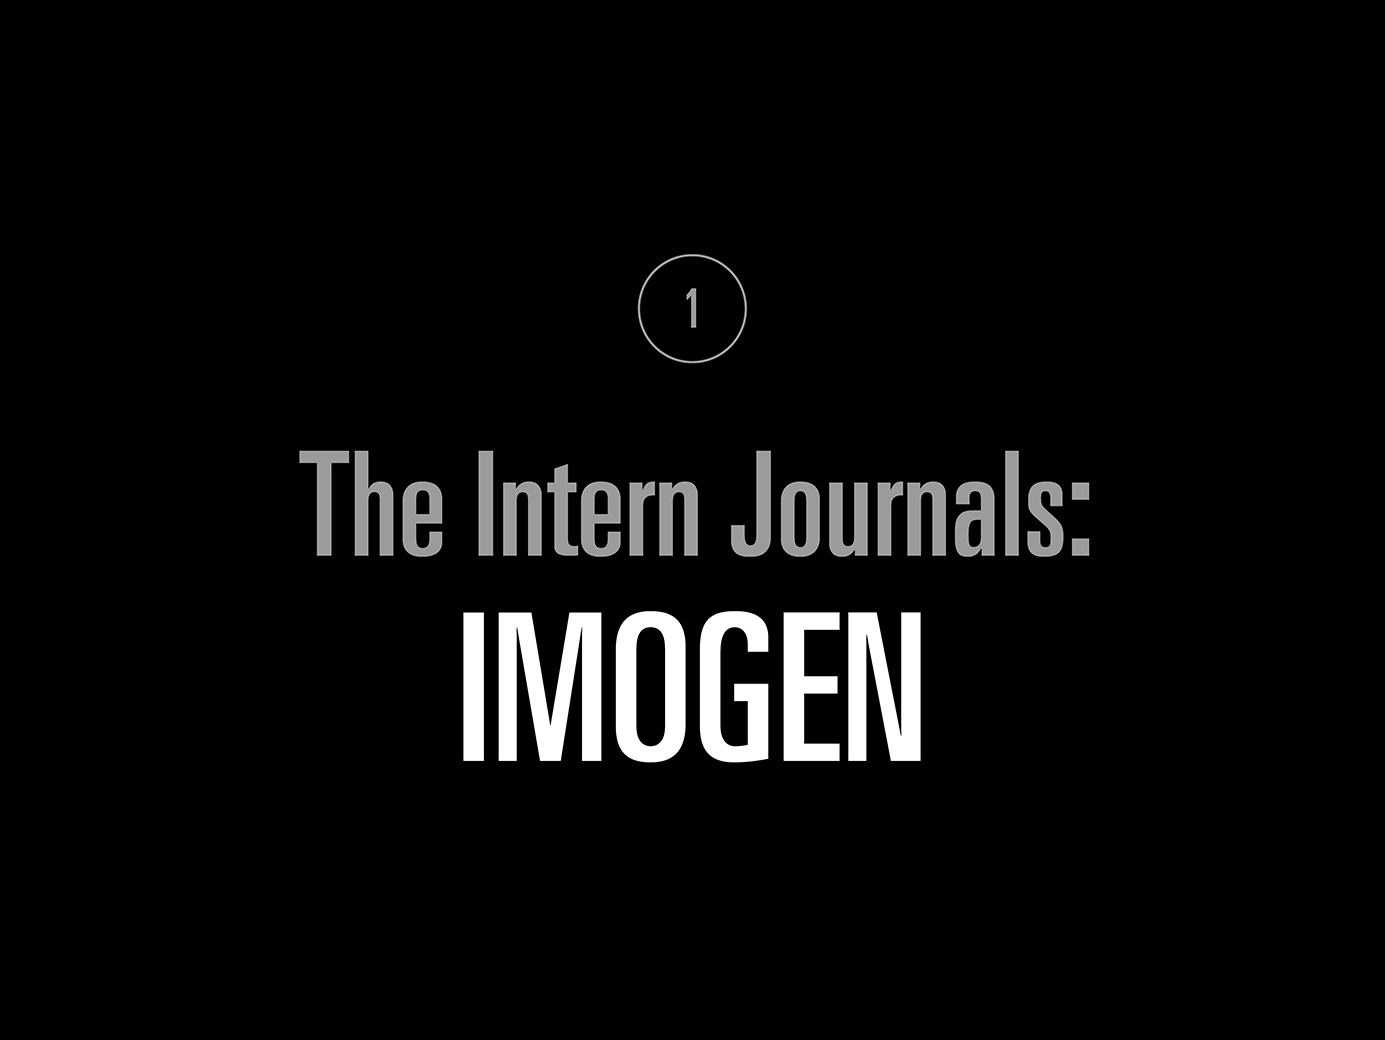 The Intern Journals: Imogen